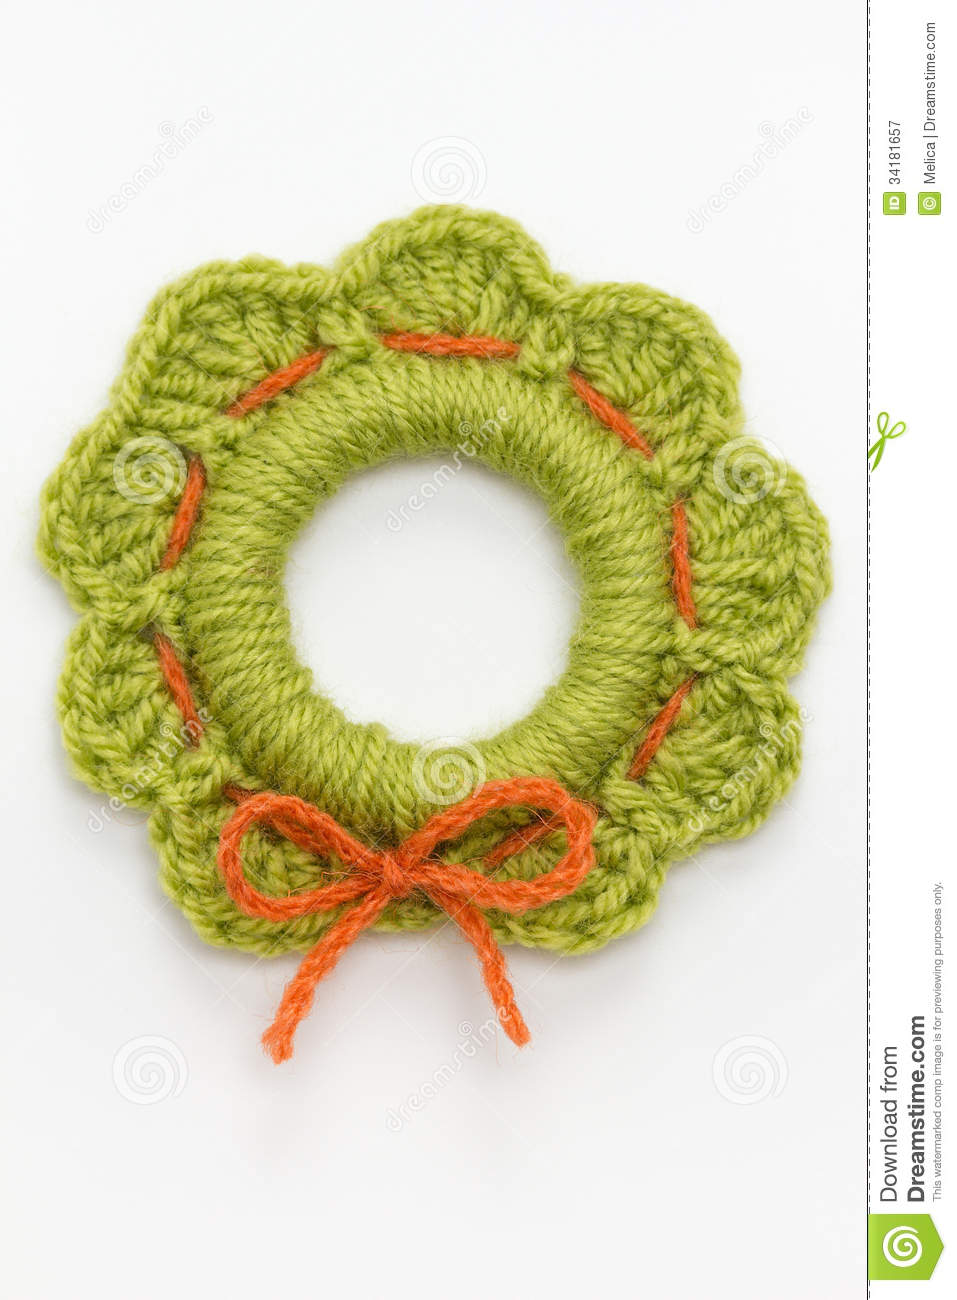 Crochet Christmas Decoration Stock Image Image Of Crafts Backdrop